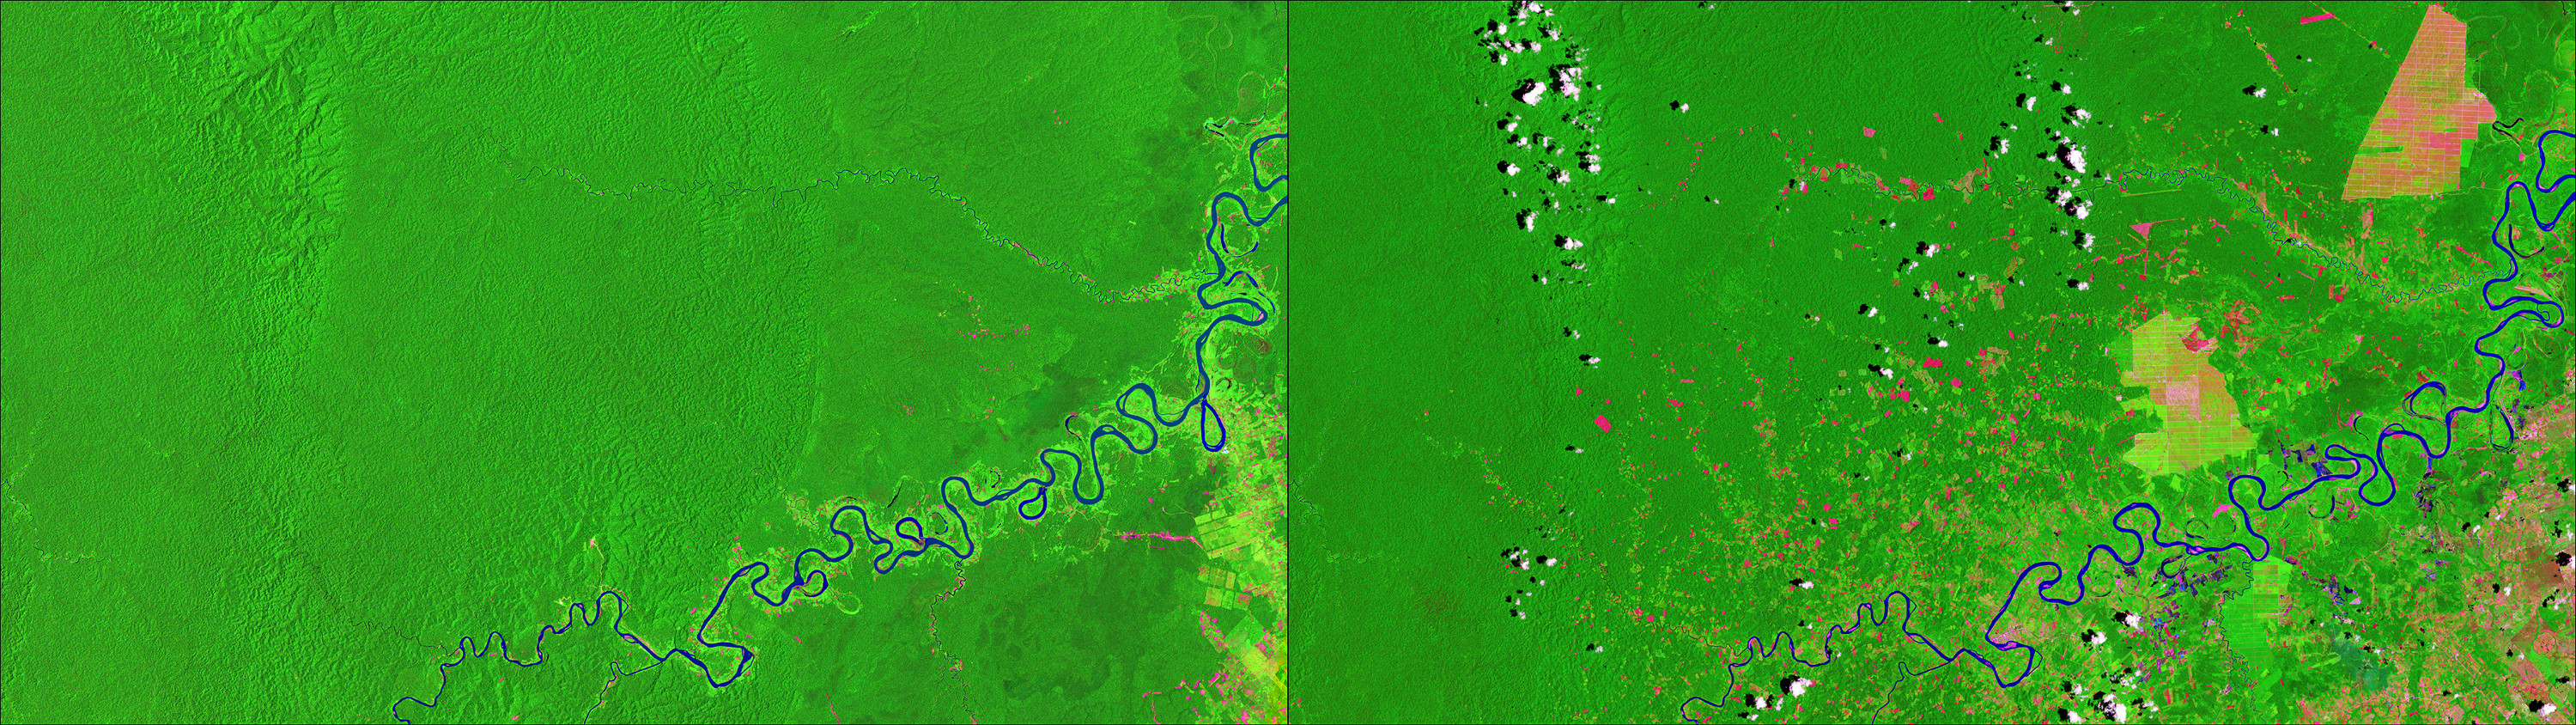 "Photos: Deforestation near Pucallpa, Peruvian Amazon, November 13, 1986 (left) - October 30, 2016 (Right). Source: U.S. Geological Survey (USGS) Landsat Missions Gallery: ""Monitoring Deforestation in the Amazon""; U.S. Department of the Interior / USGS and NASA."